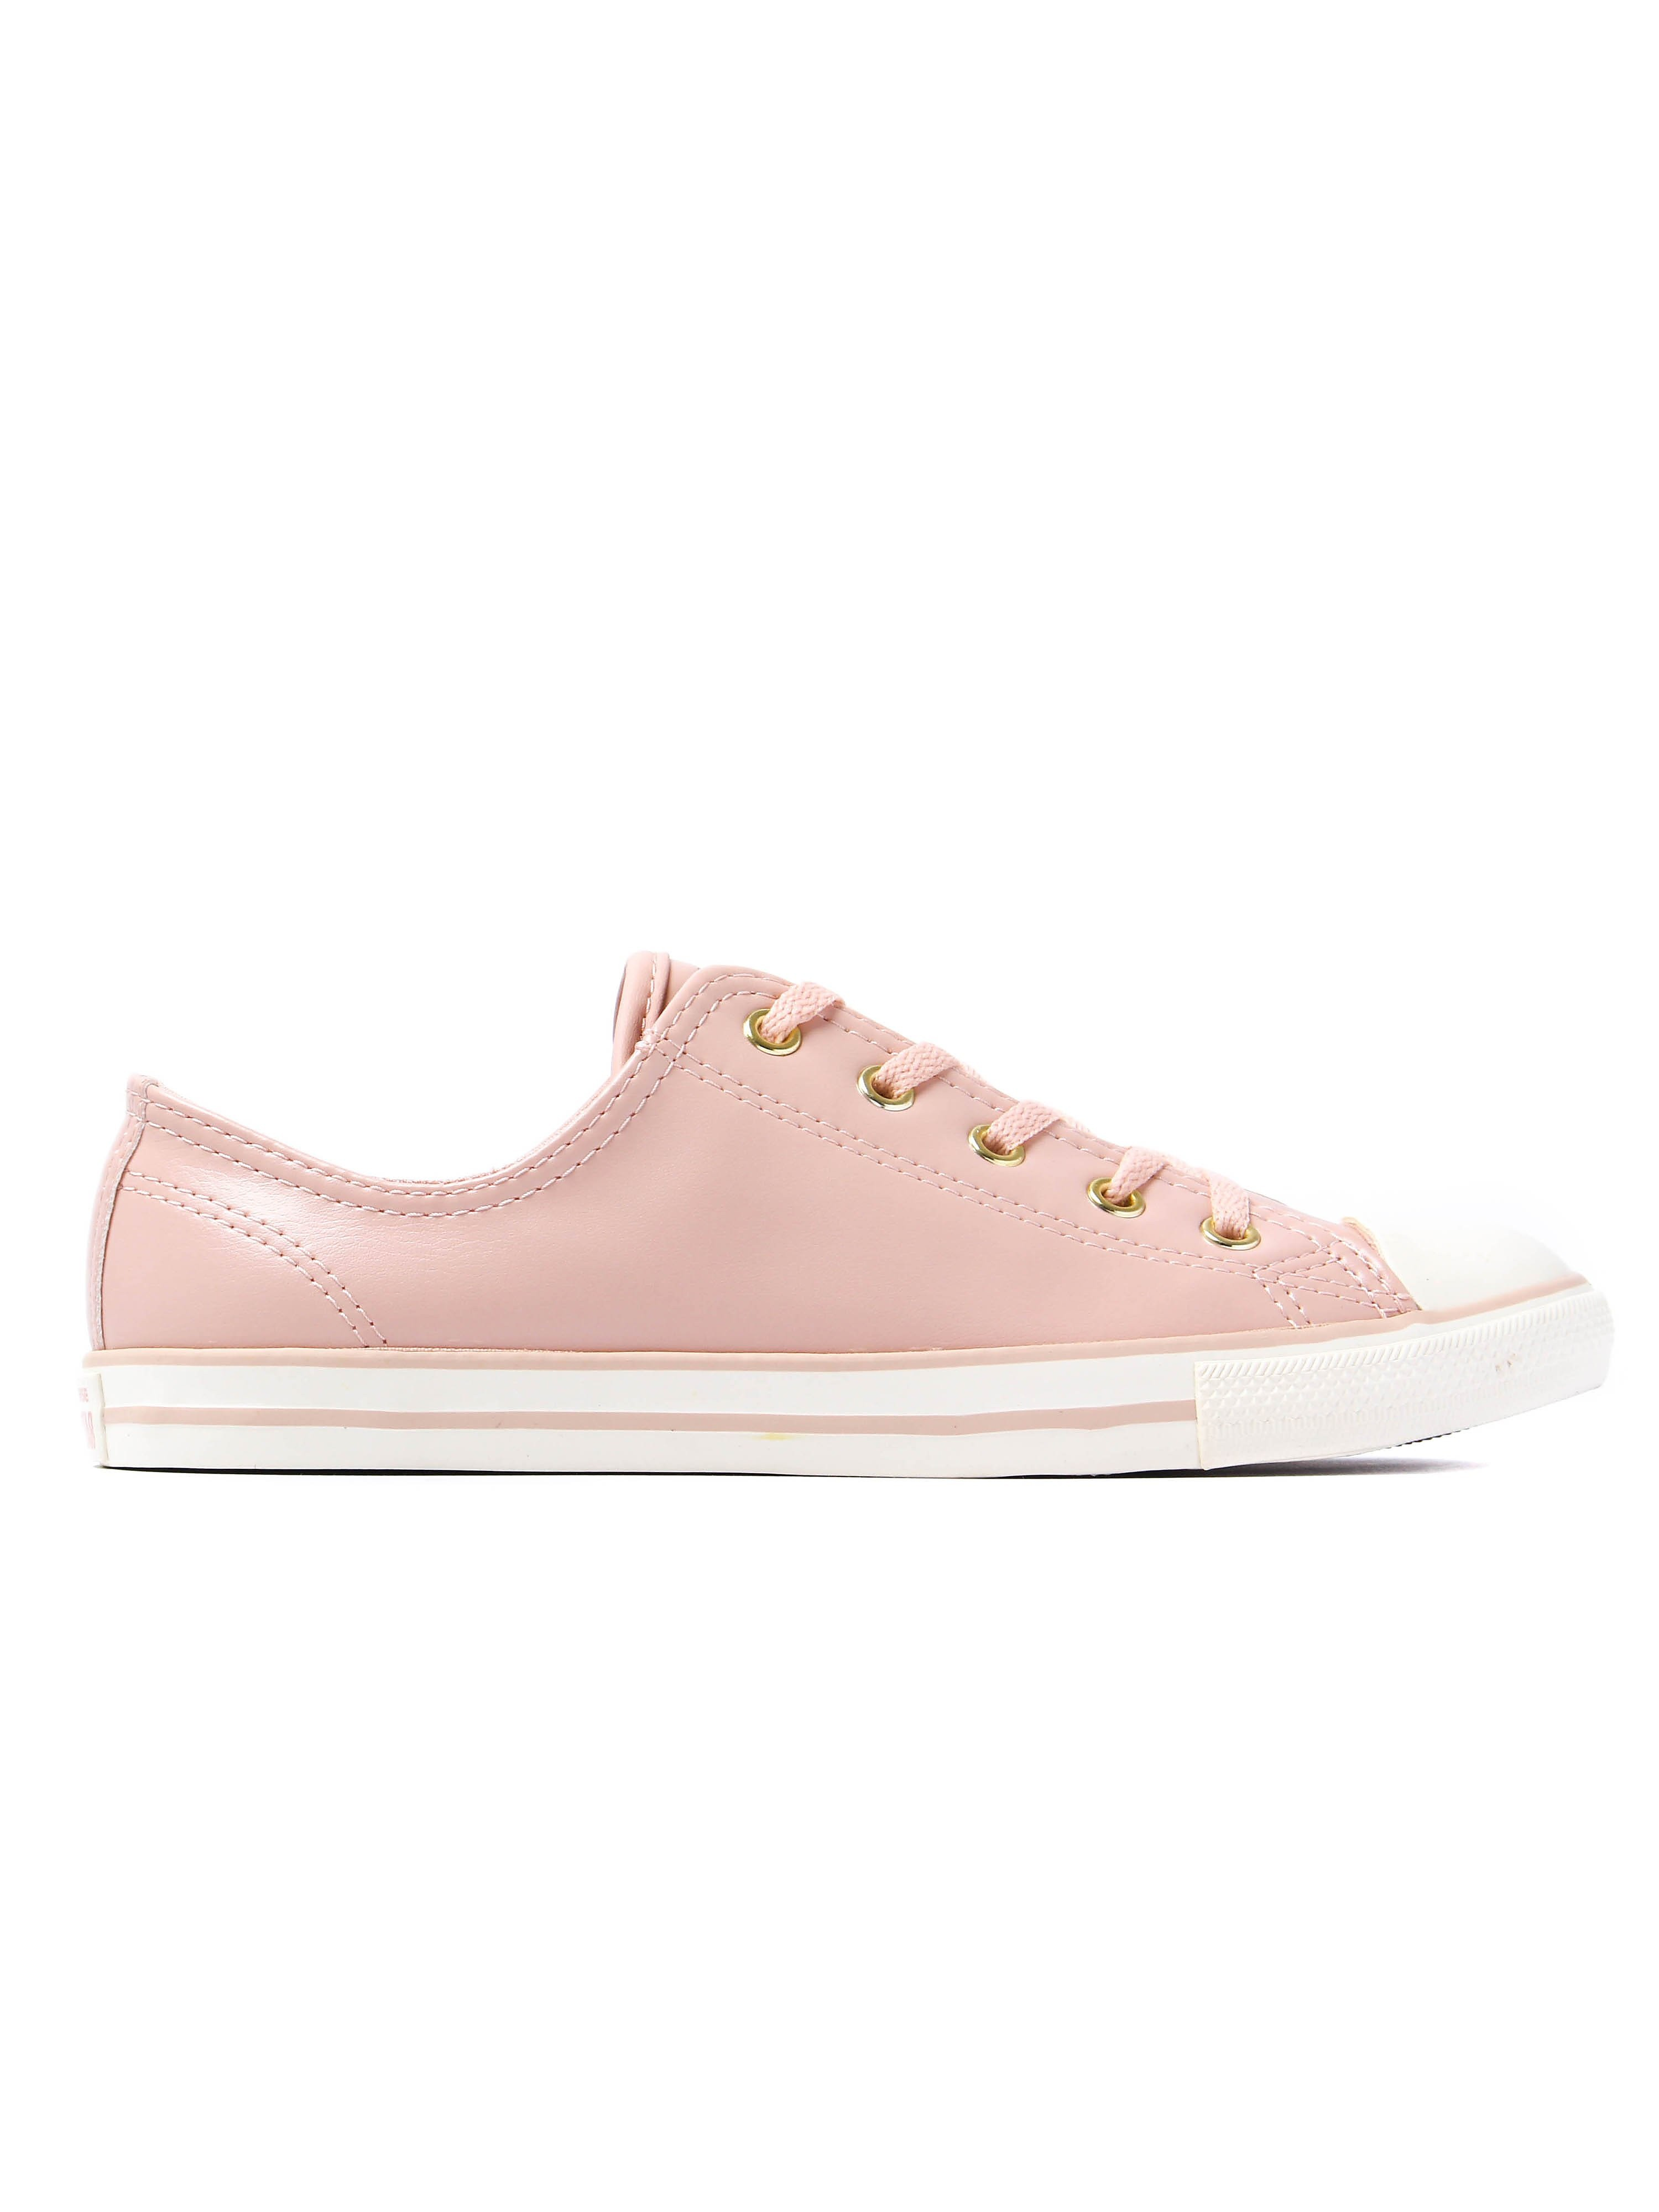 Converse Women's Chuck Taylor All Star Dainty OX Trainers - Dusk Pink